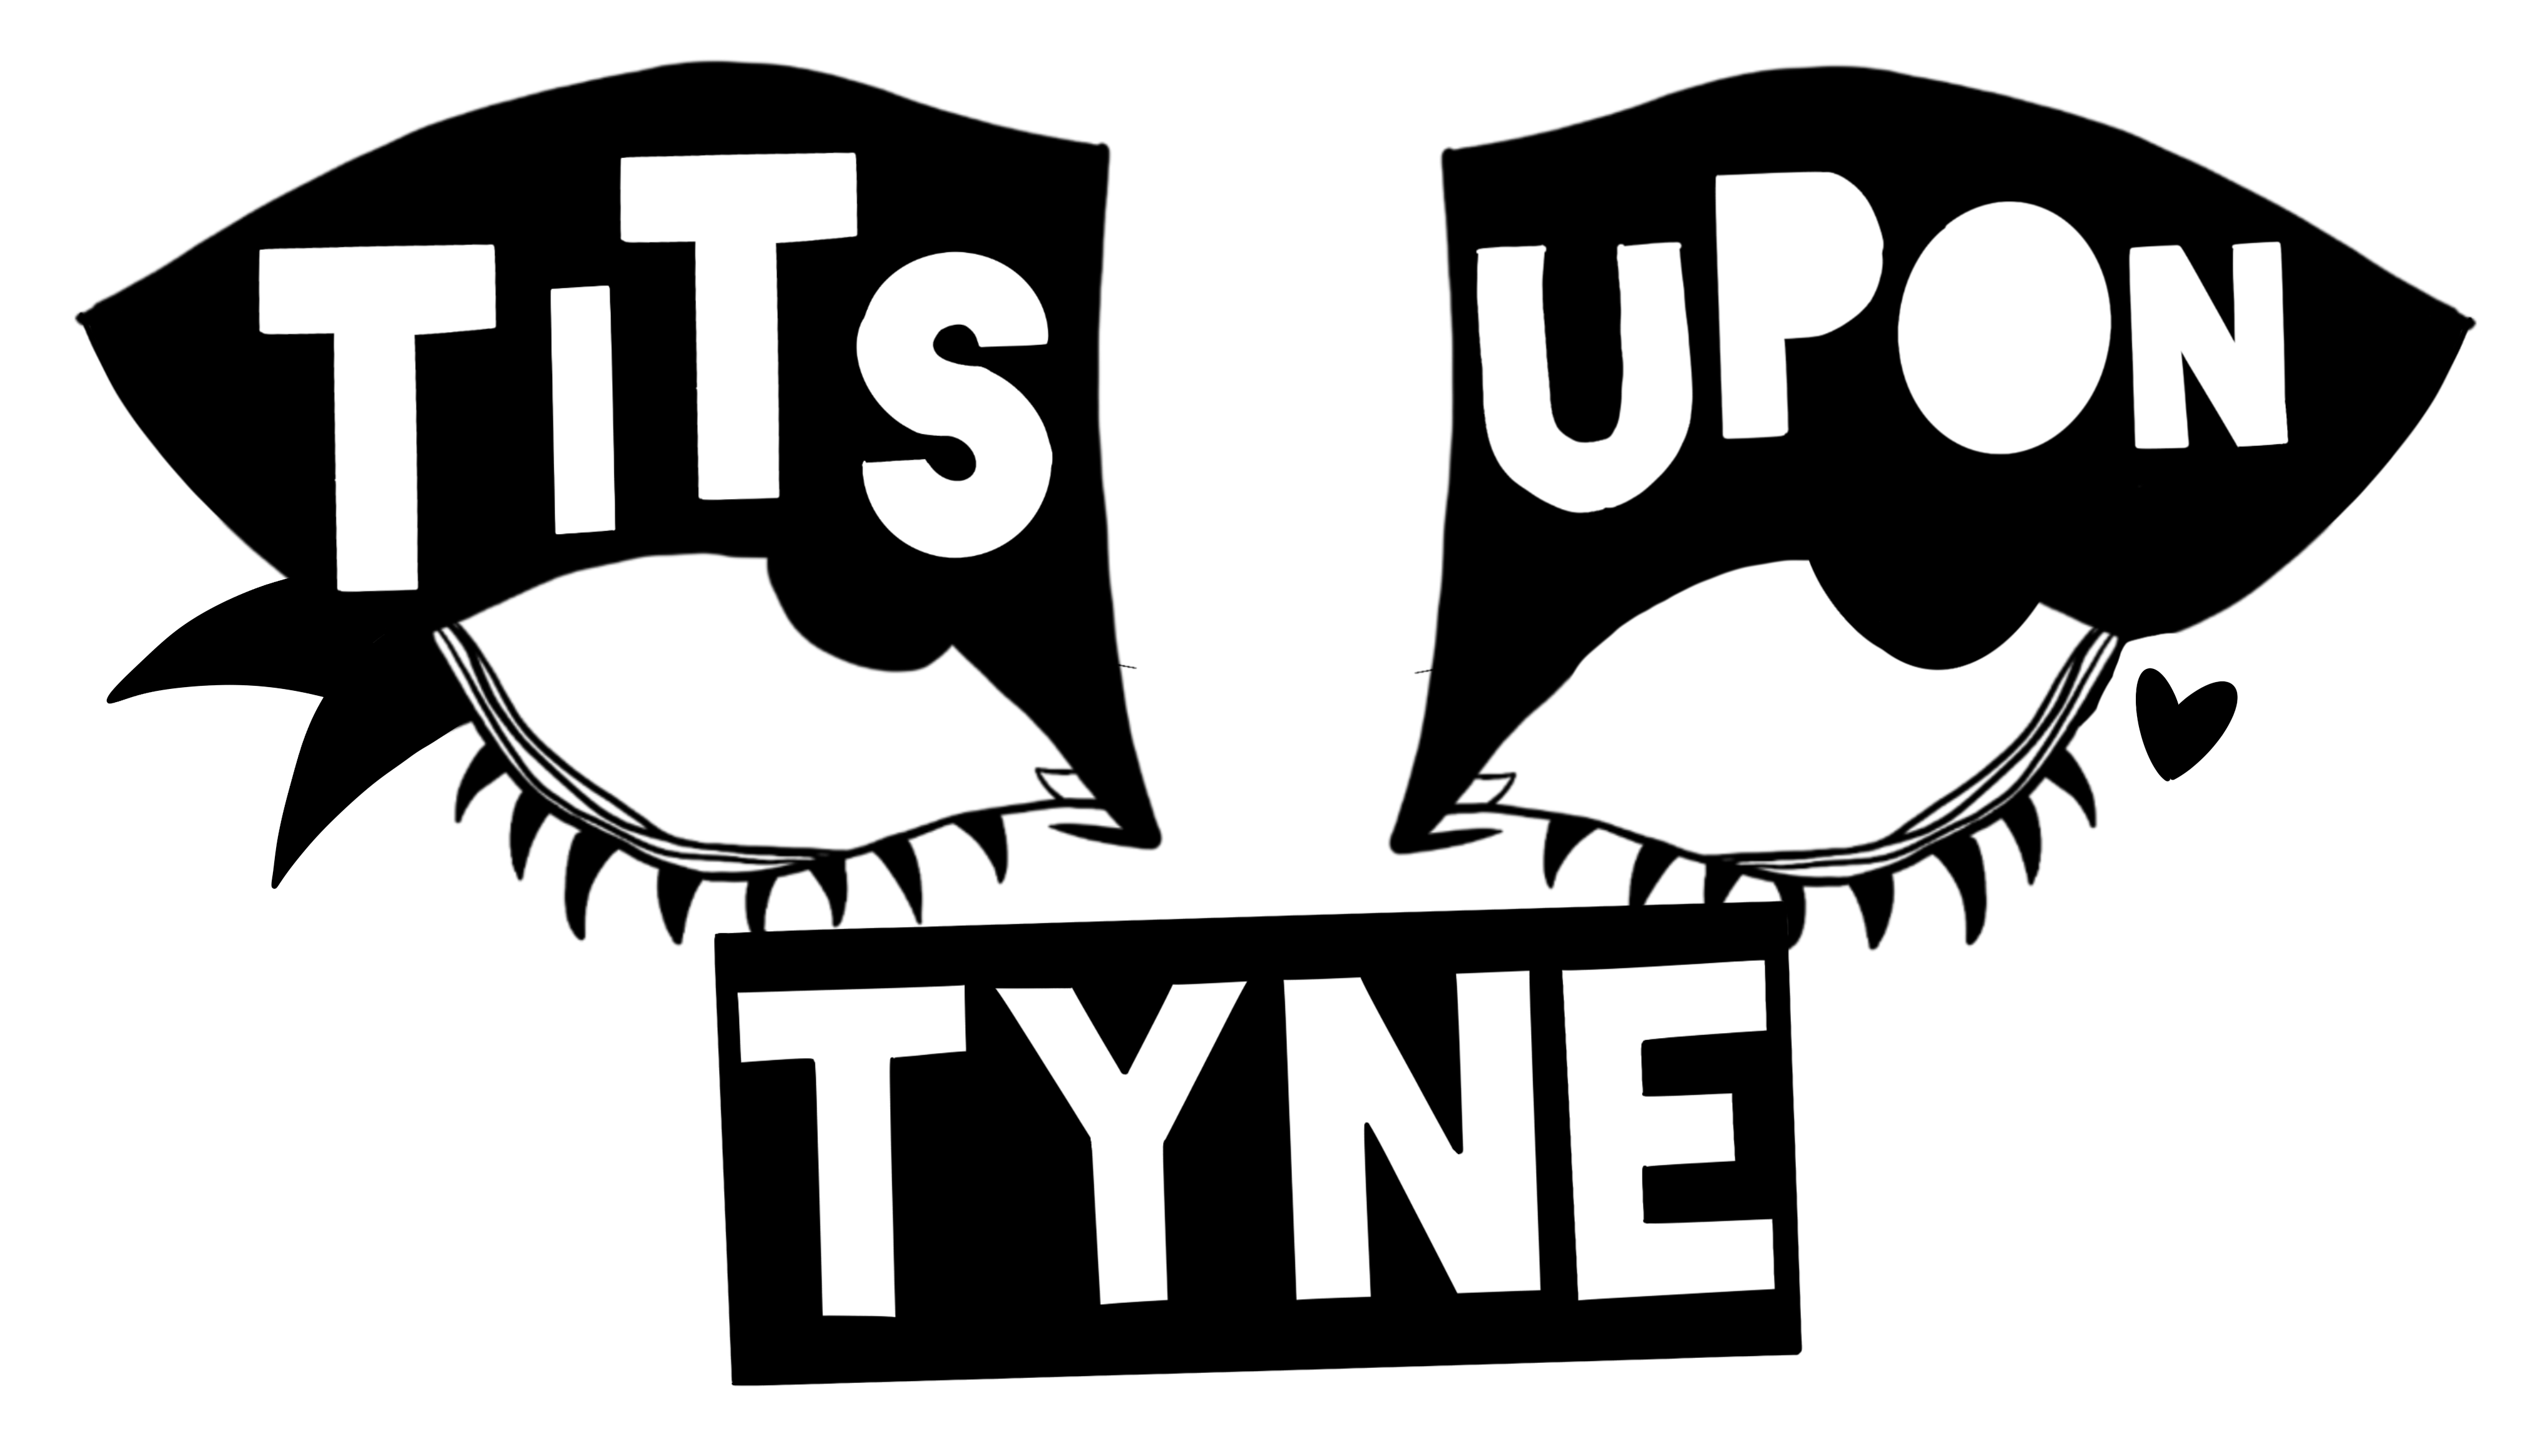 Tits Upon Tyne. Women In Music, based in the North East.